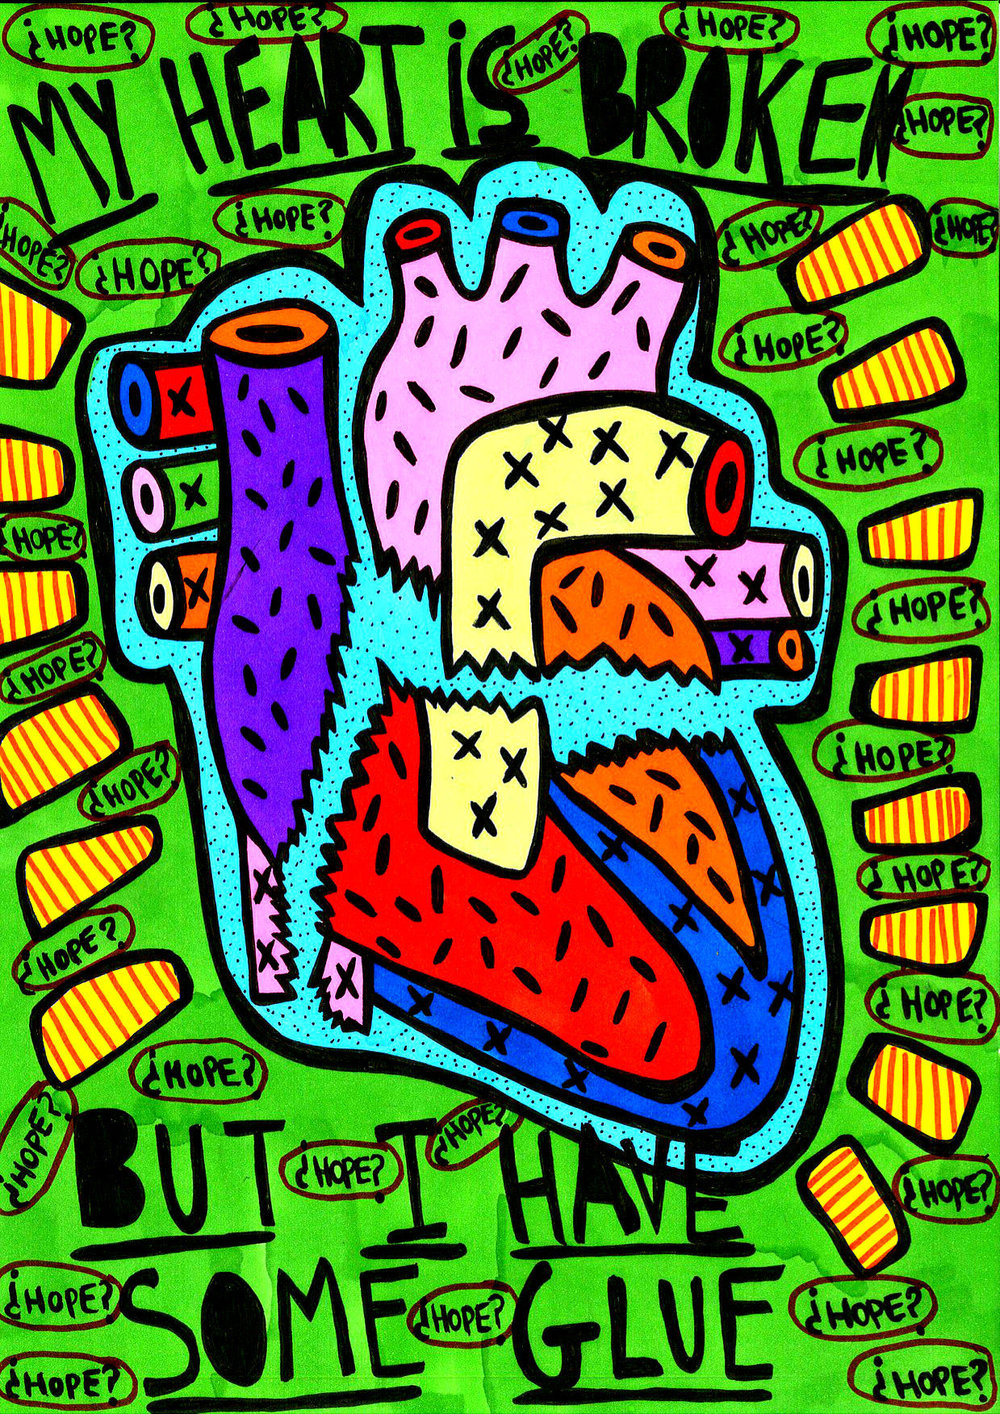 """My heart is broke but I have some glue"" , 2013   Marker on paper, 21 x 29.7 cm Private Collection"